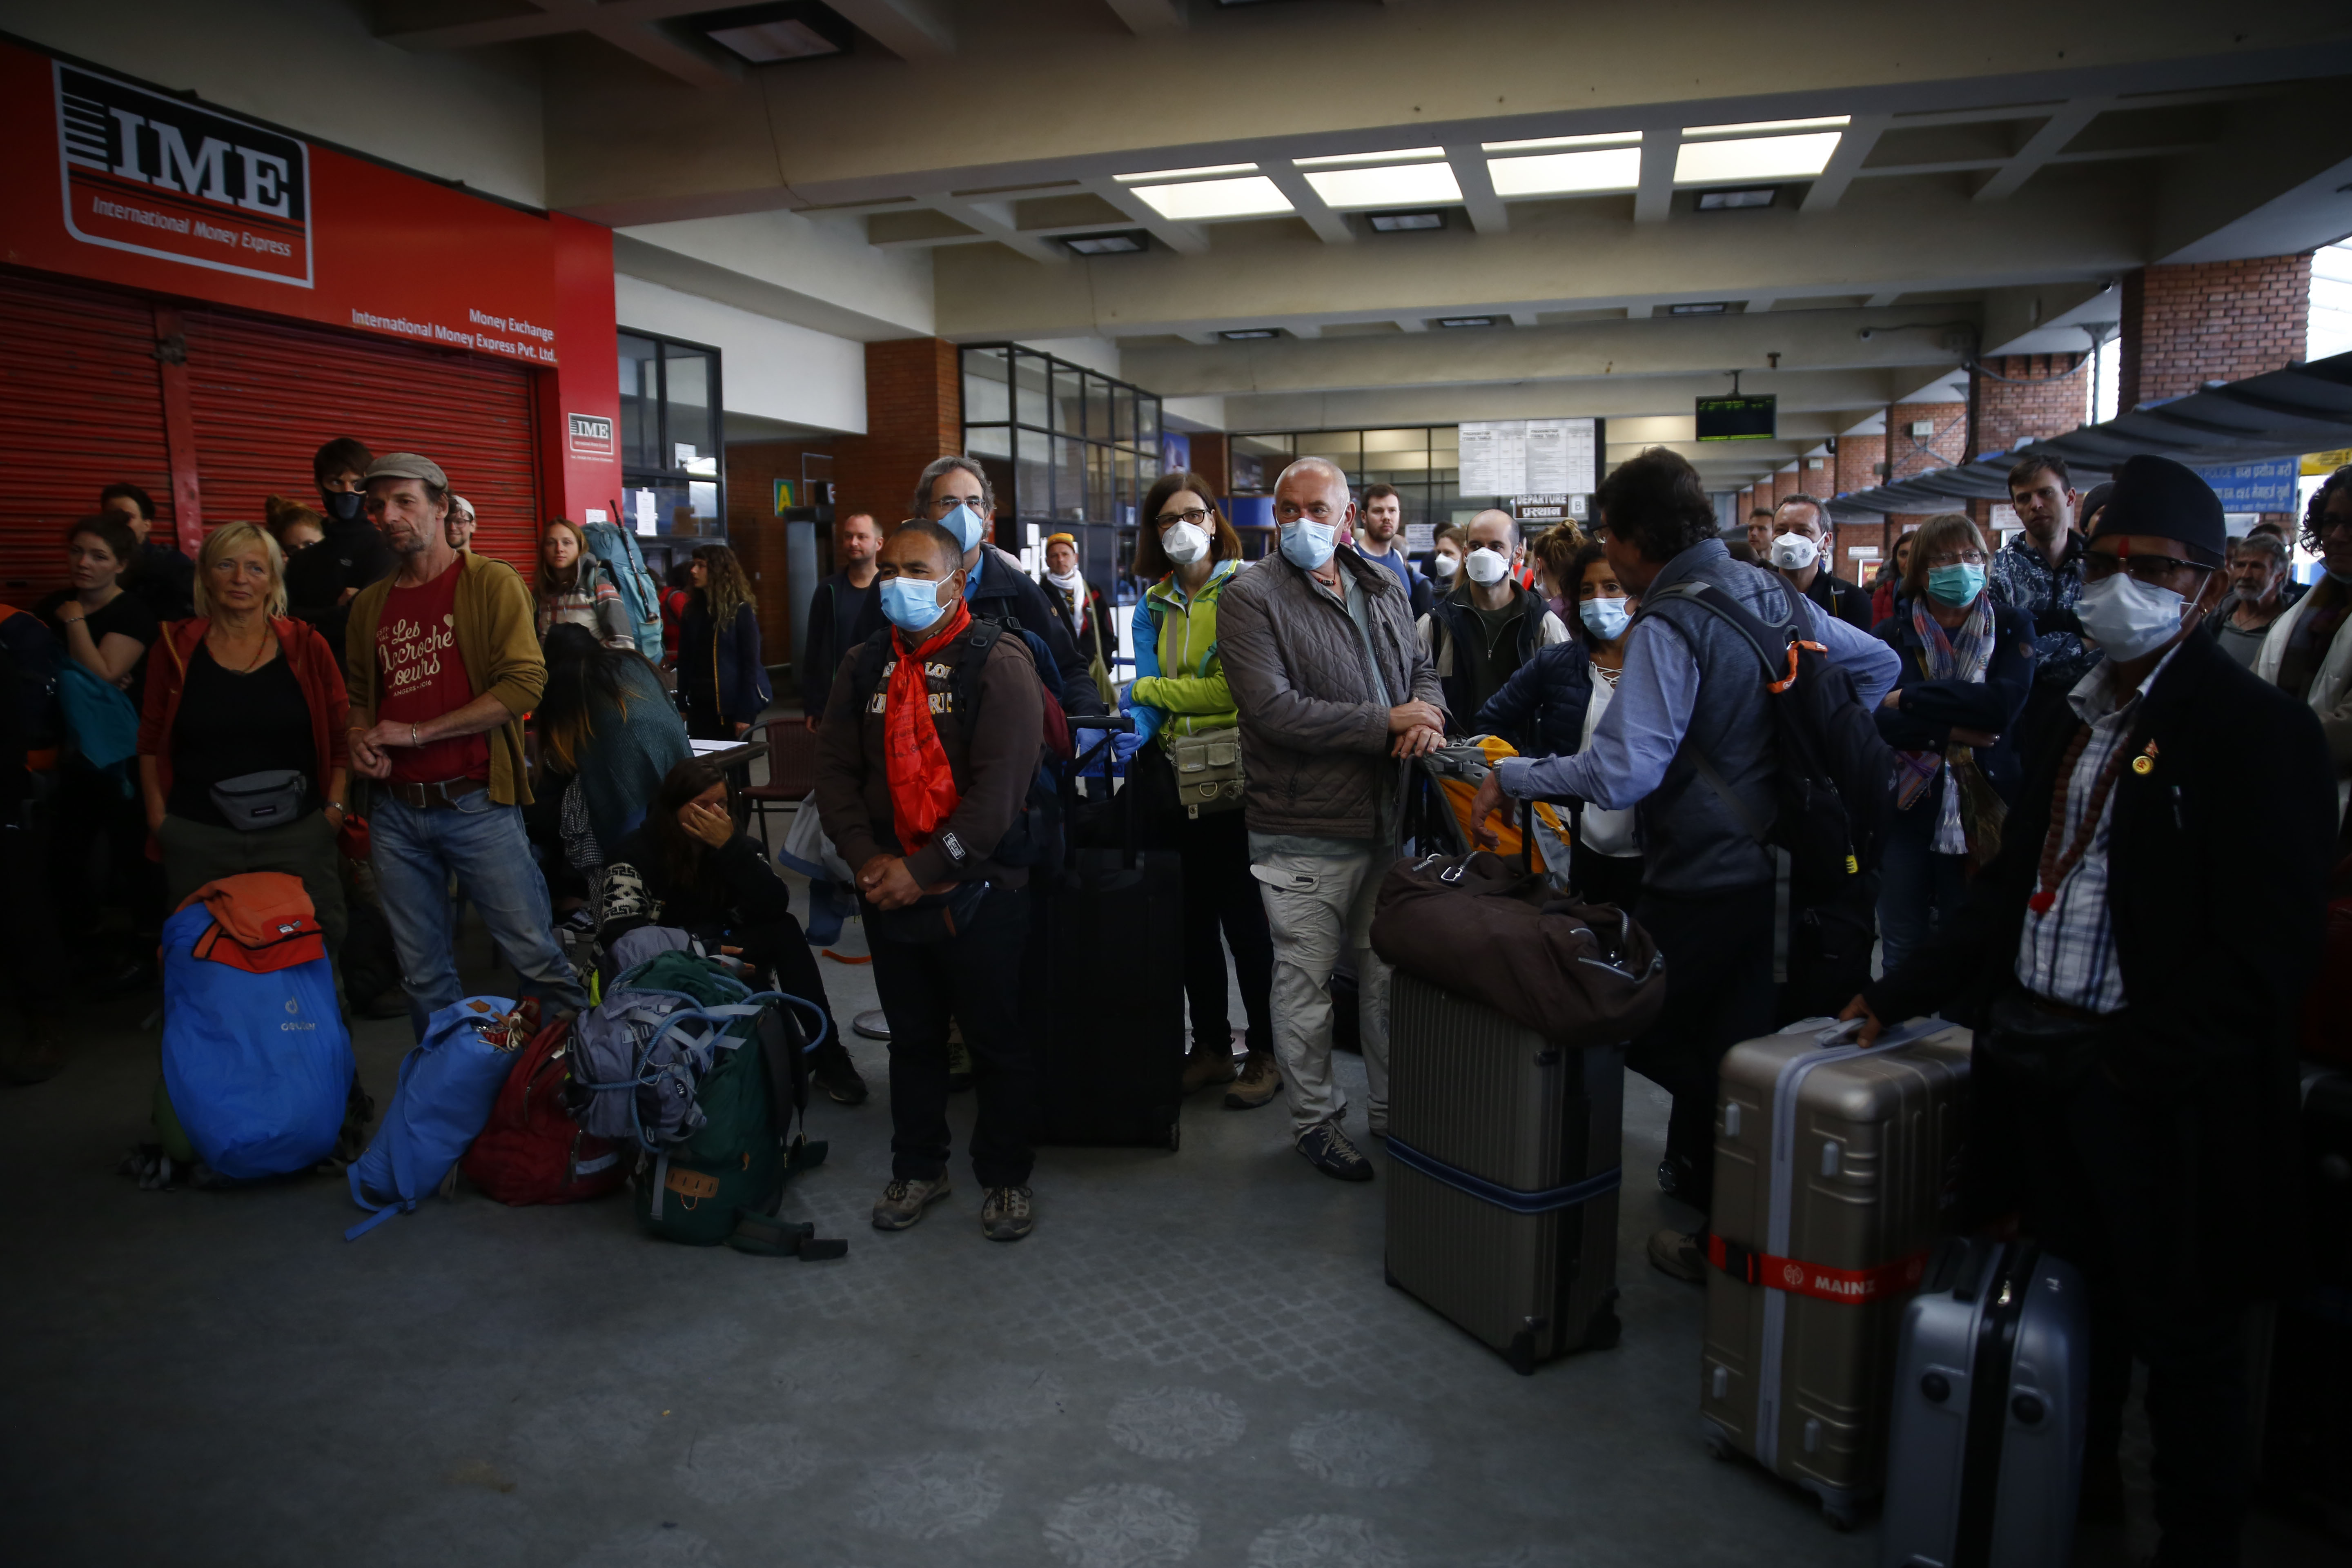 Tourists from Germany, who have been stranded in Nepal due to the government-imposed lockdown amid concerns over the spread of coronavirus infection, wait for their chartered flight back home, at Tribhuvan International Airport, in Kathmandu, on Friday, March 27, 2020. Photo: Skanda Gautam/THT